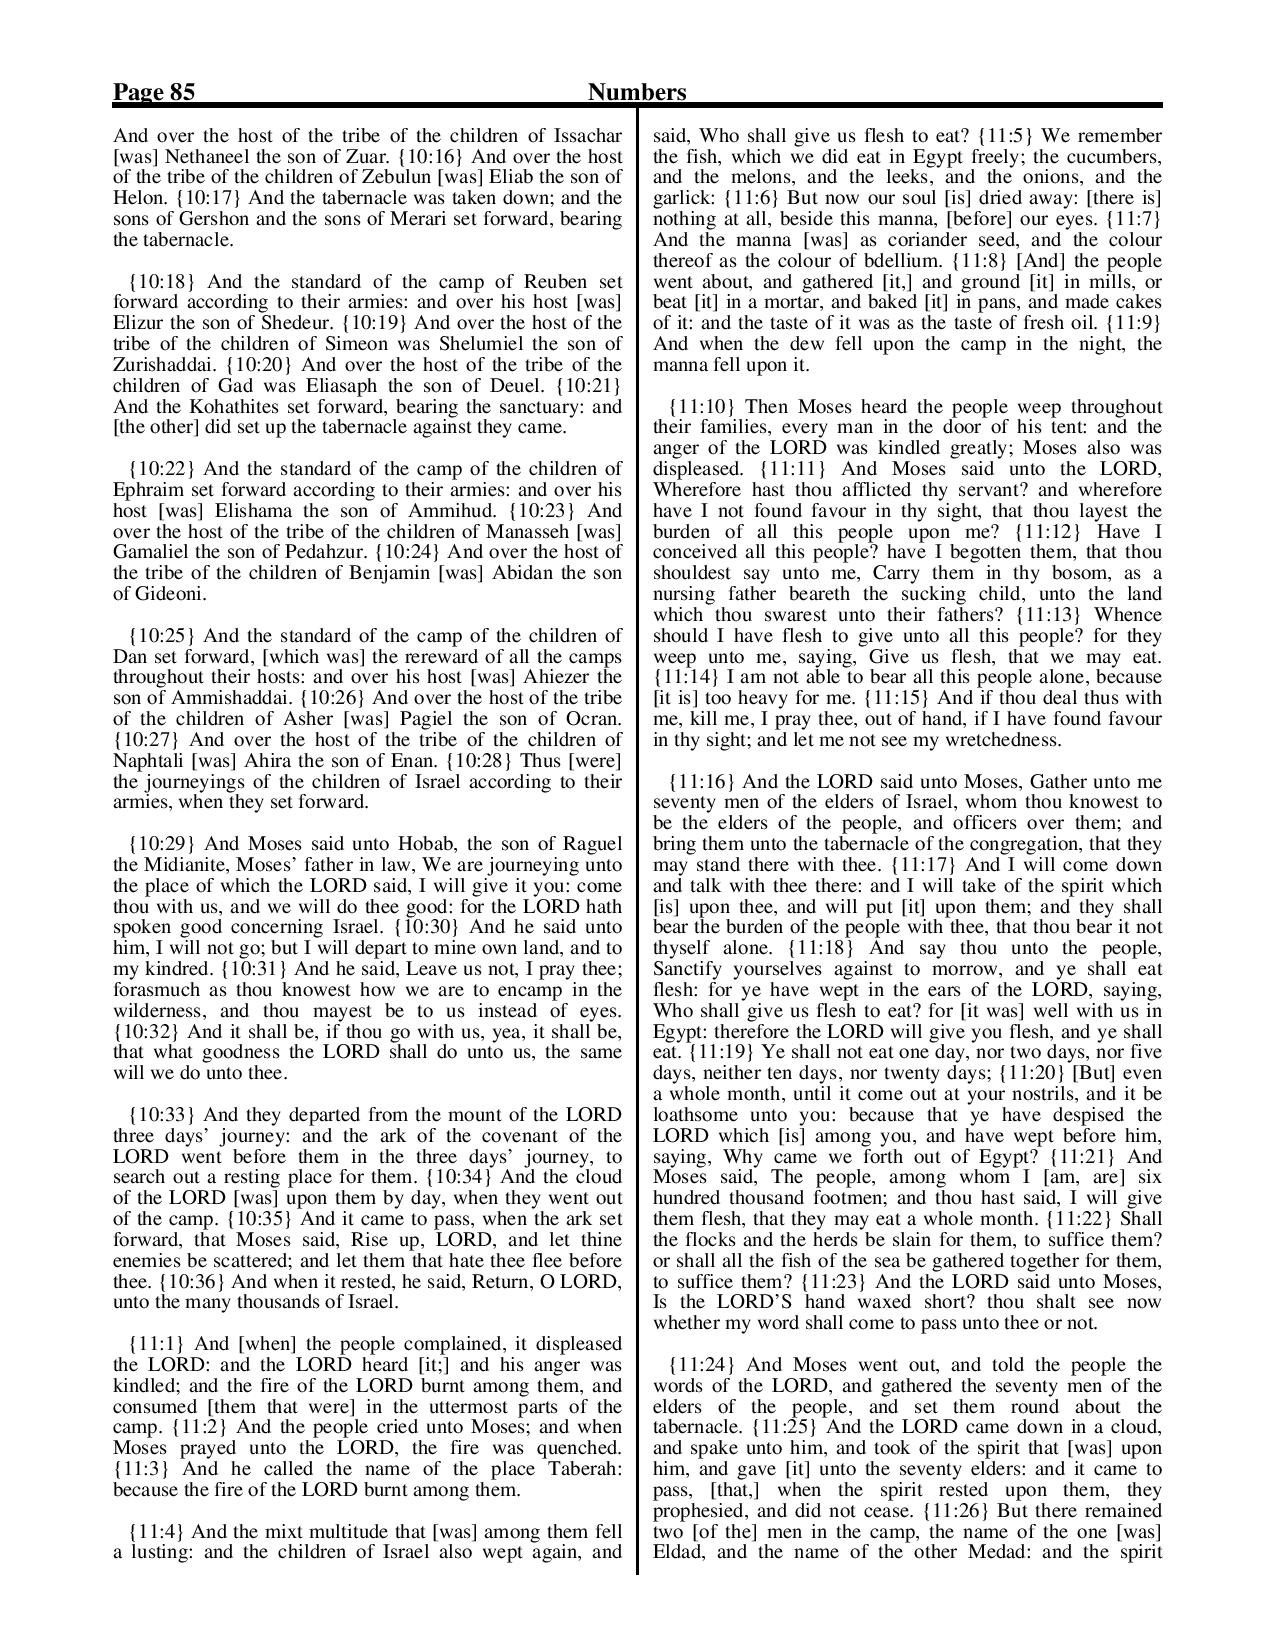 King-James-Bible-KJV-Bible-PDF-page-106